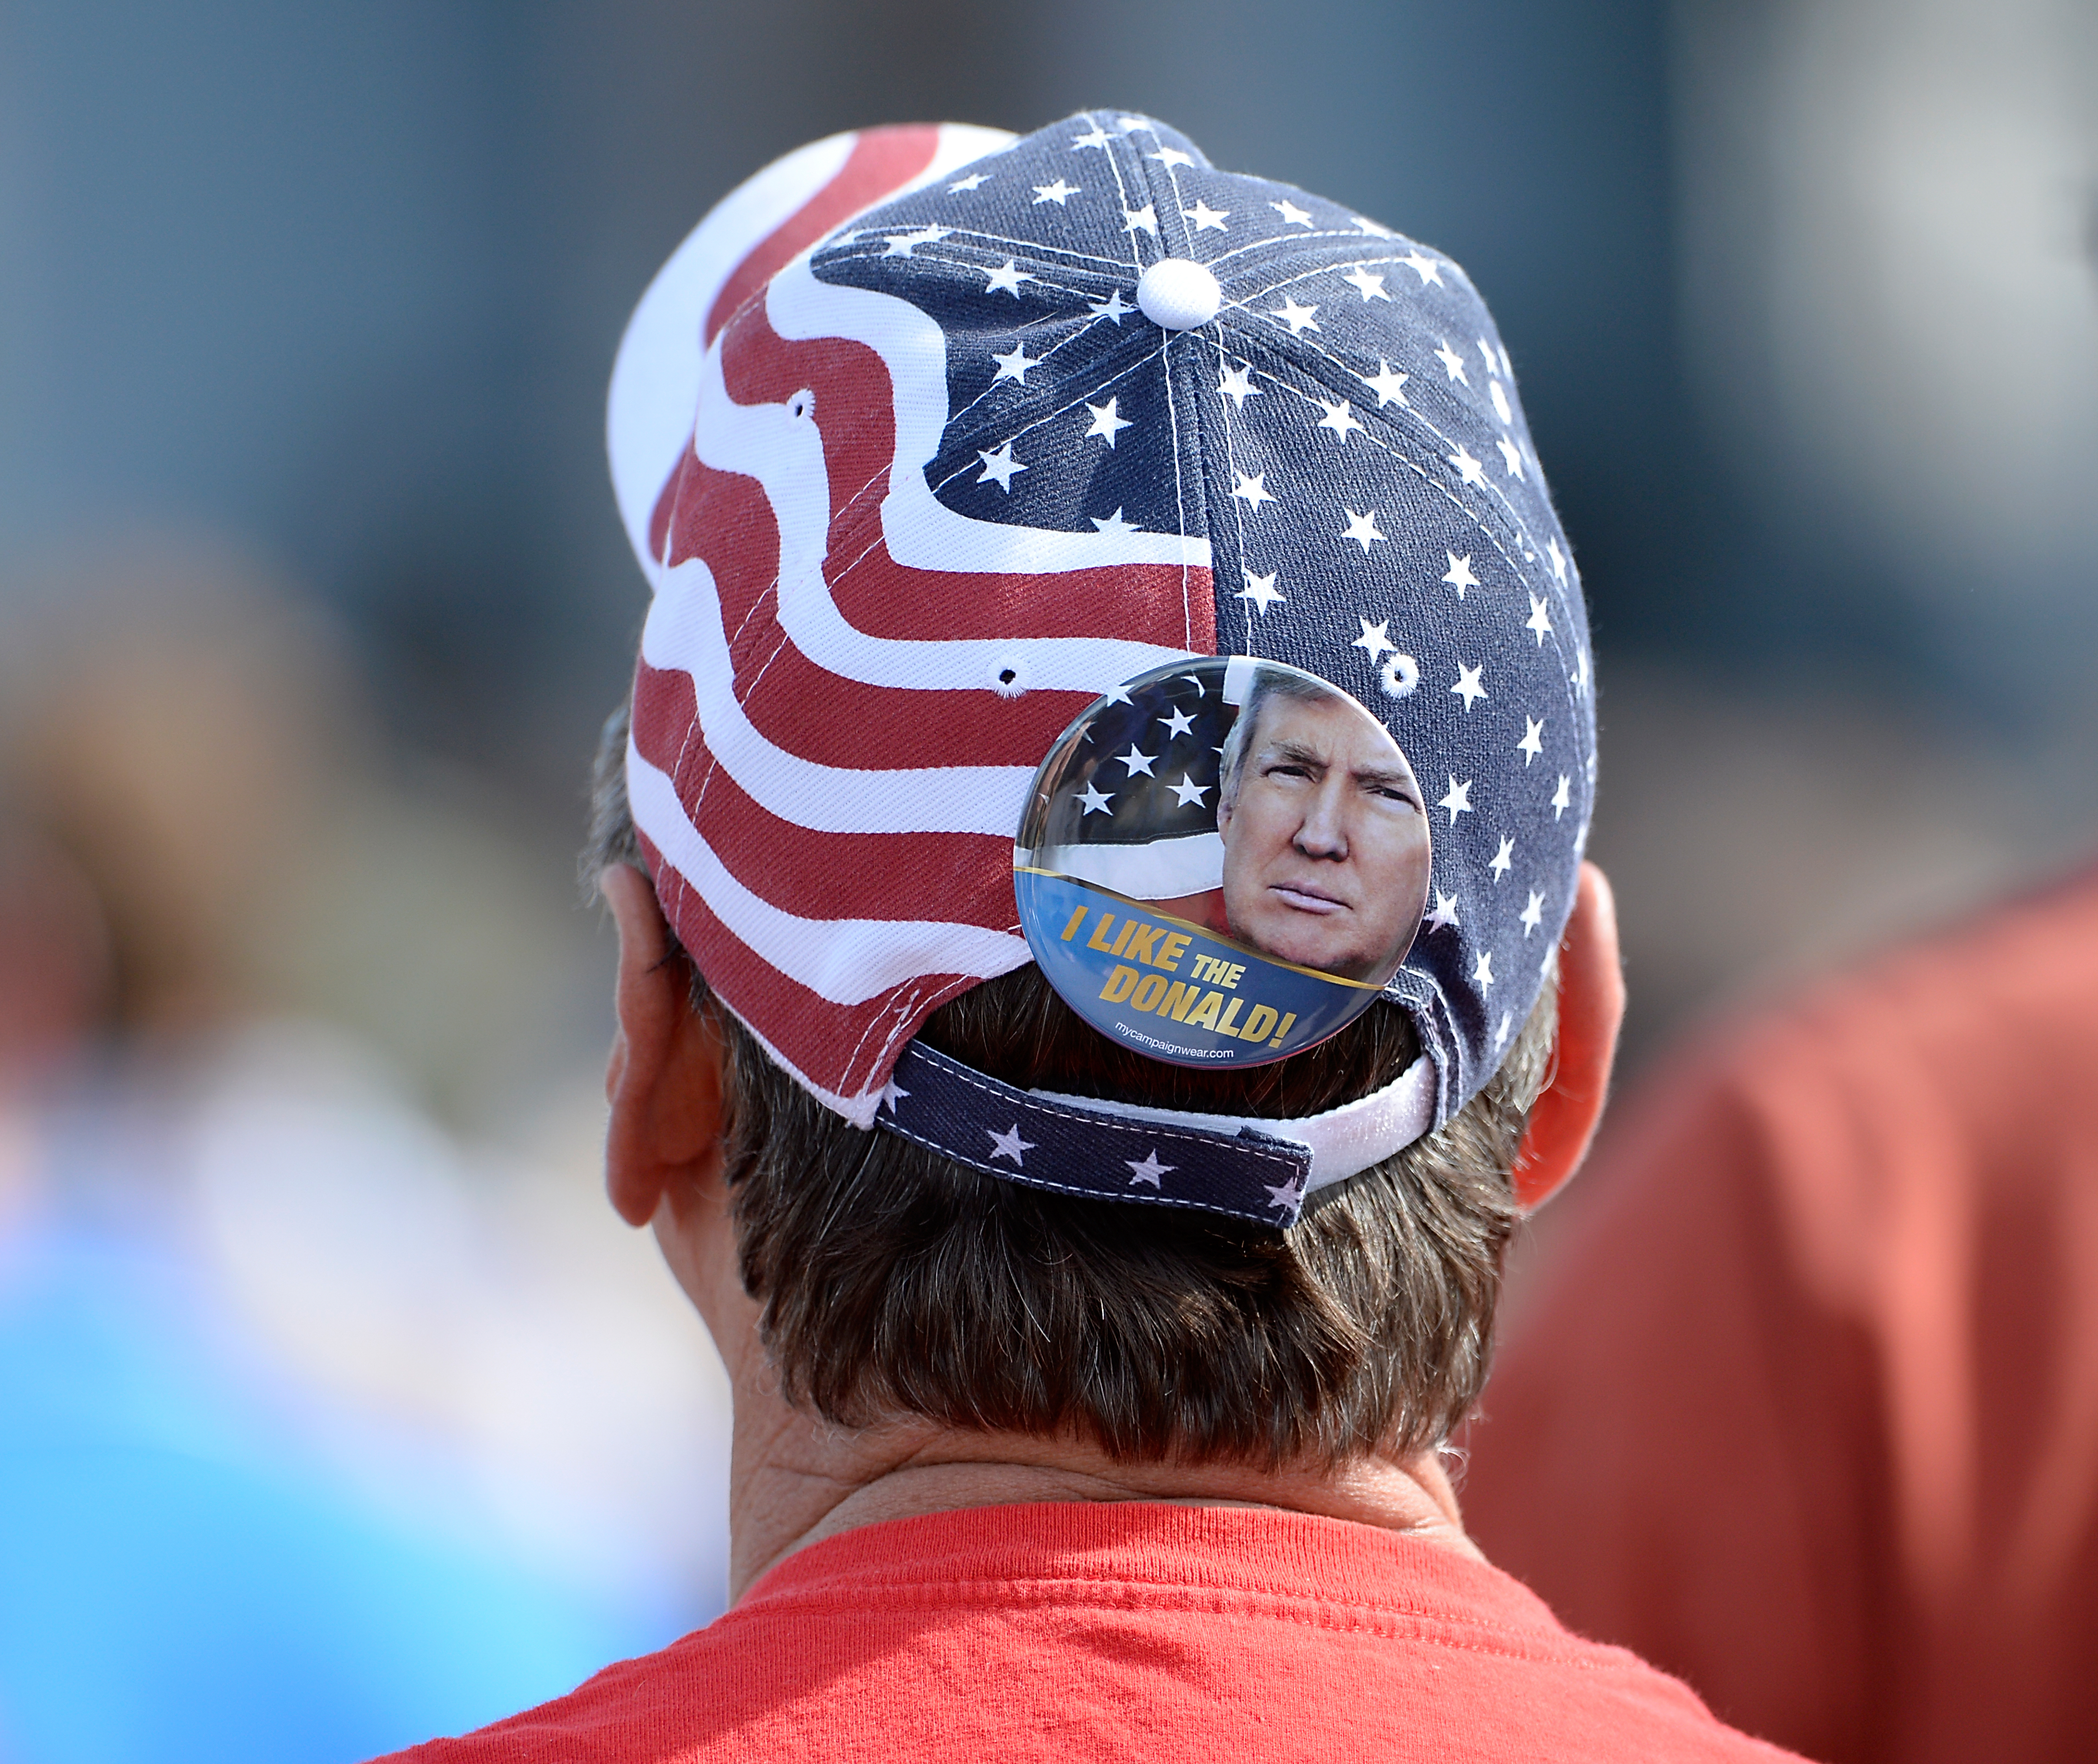 A supporter for Republican presidential candidate Donald Trump wears regalia at a rally on October 31, 2015 in Norfolk, Virginia.